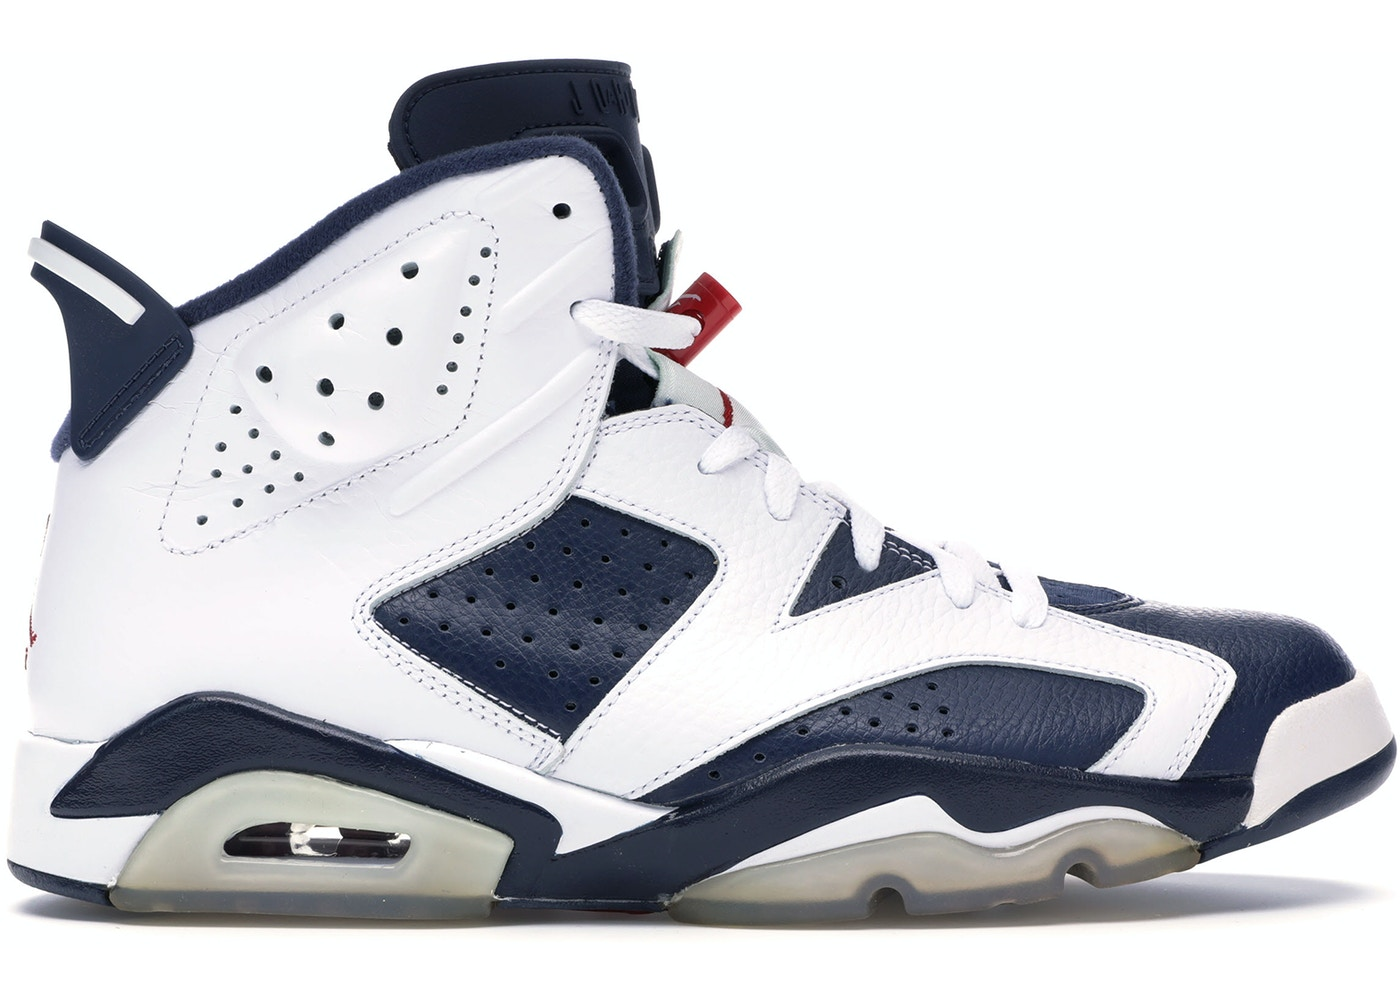 652827692a7 Jordan 6 Retro Olympic London (2012) - 384664-130